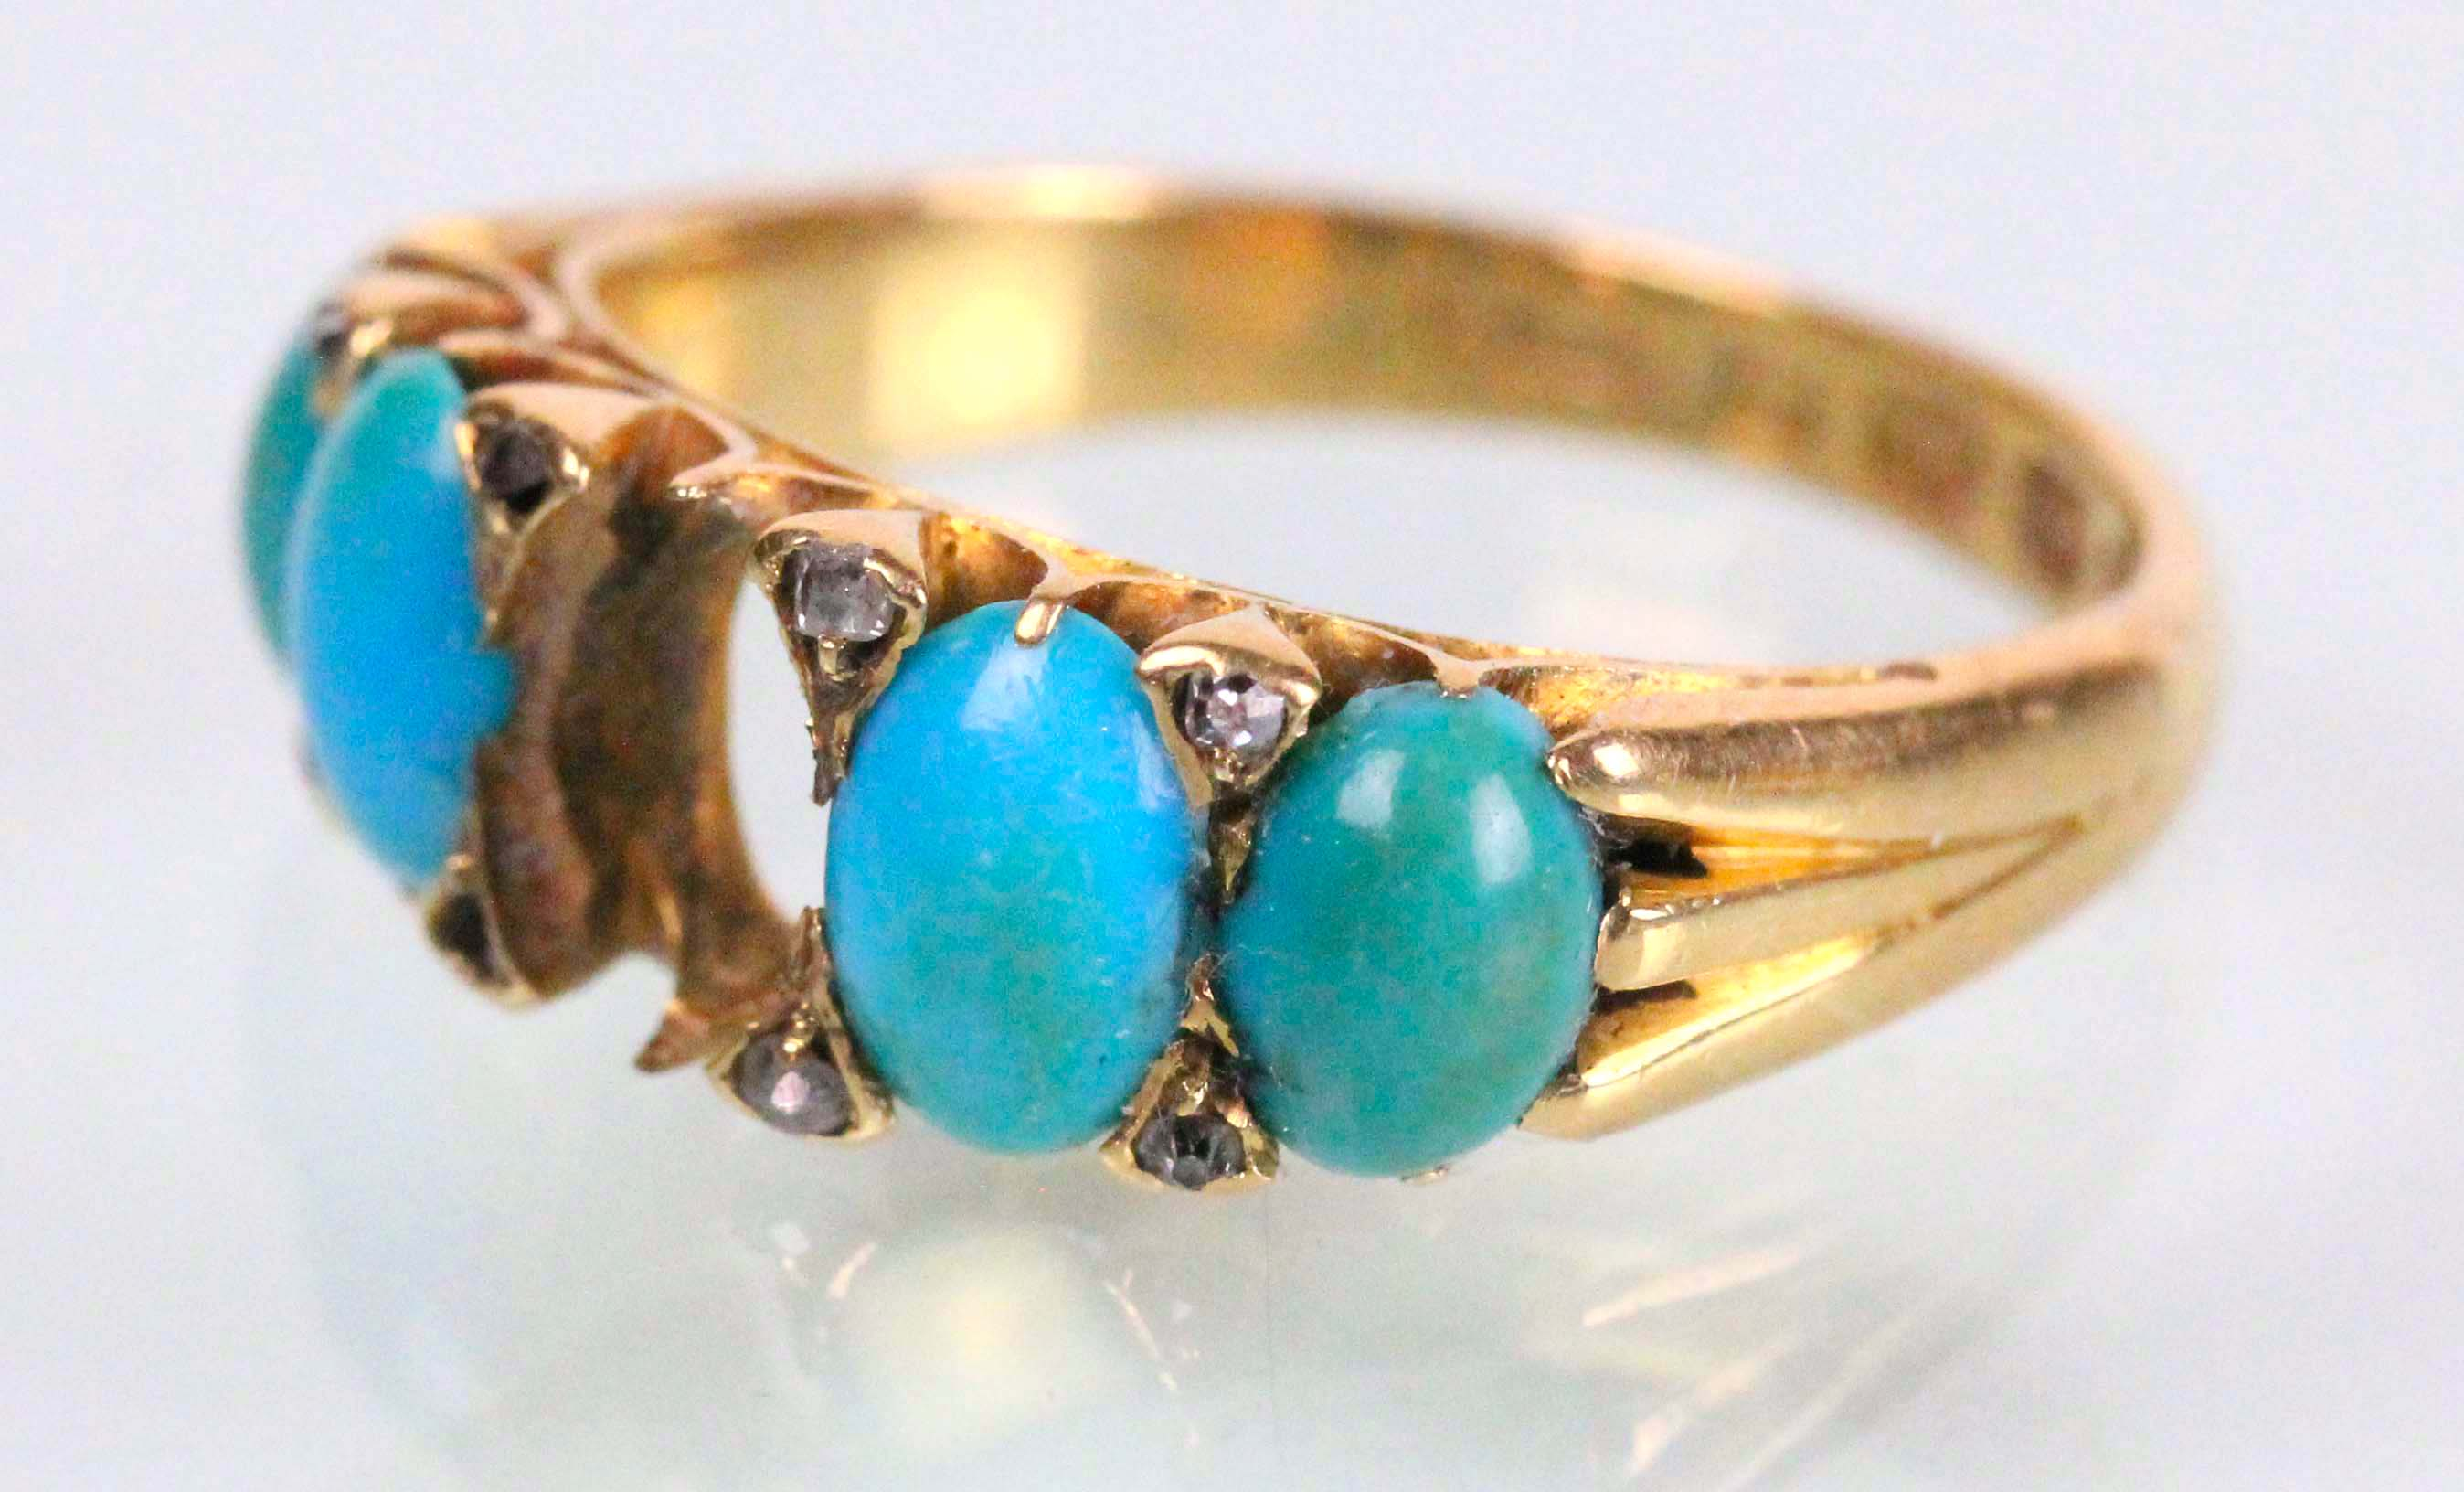 Gold Ring. Turquoise and Diamonds. Jewelry Repair and Restoration.